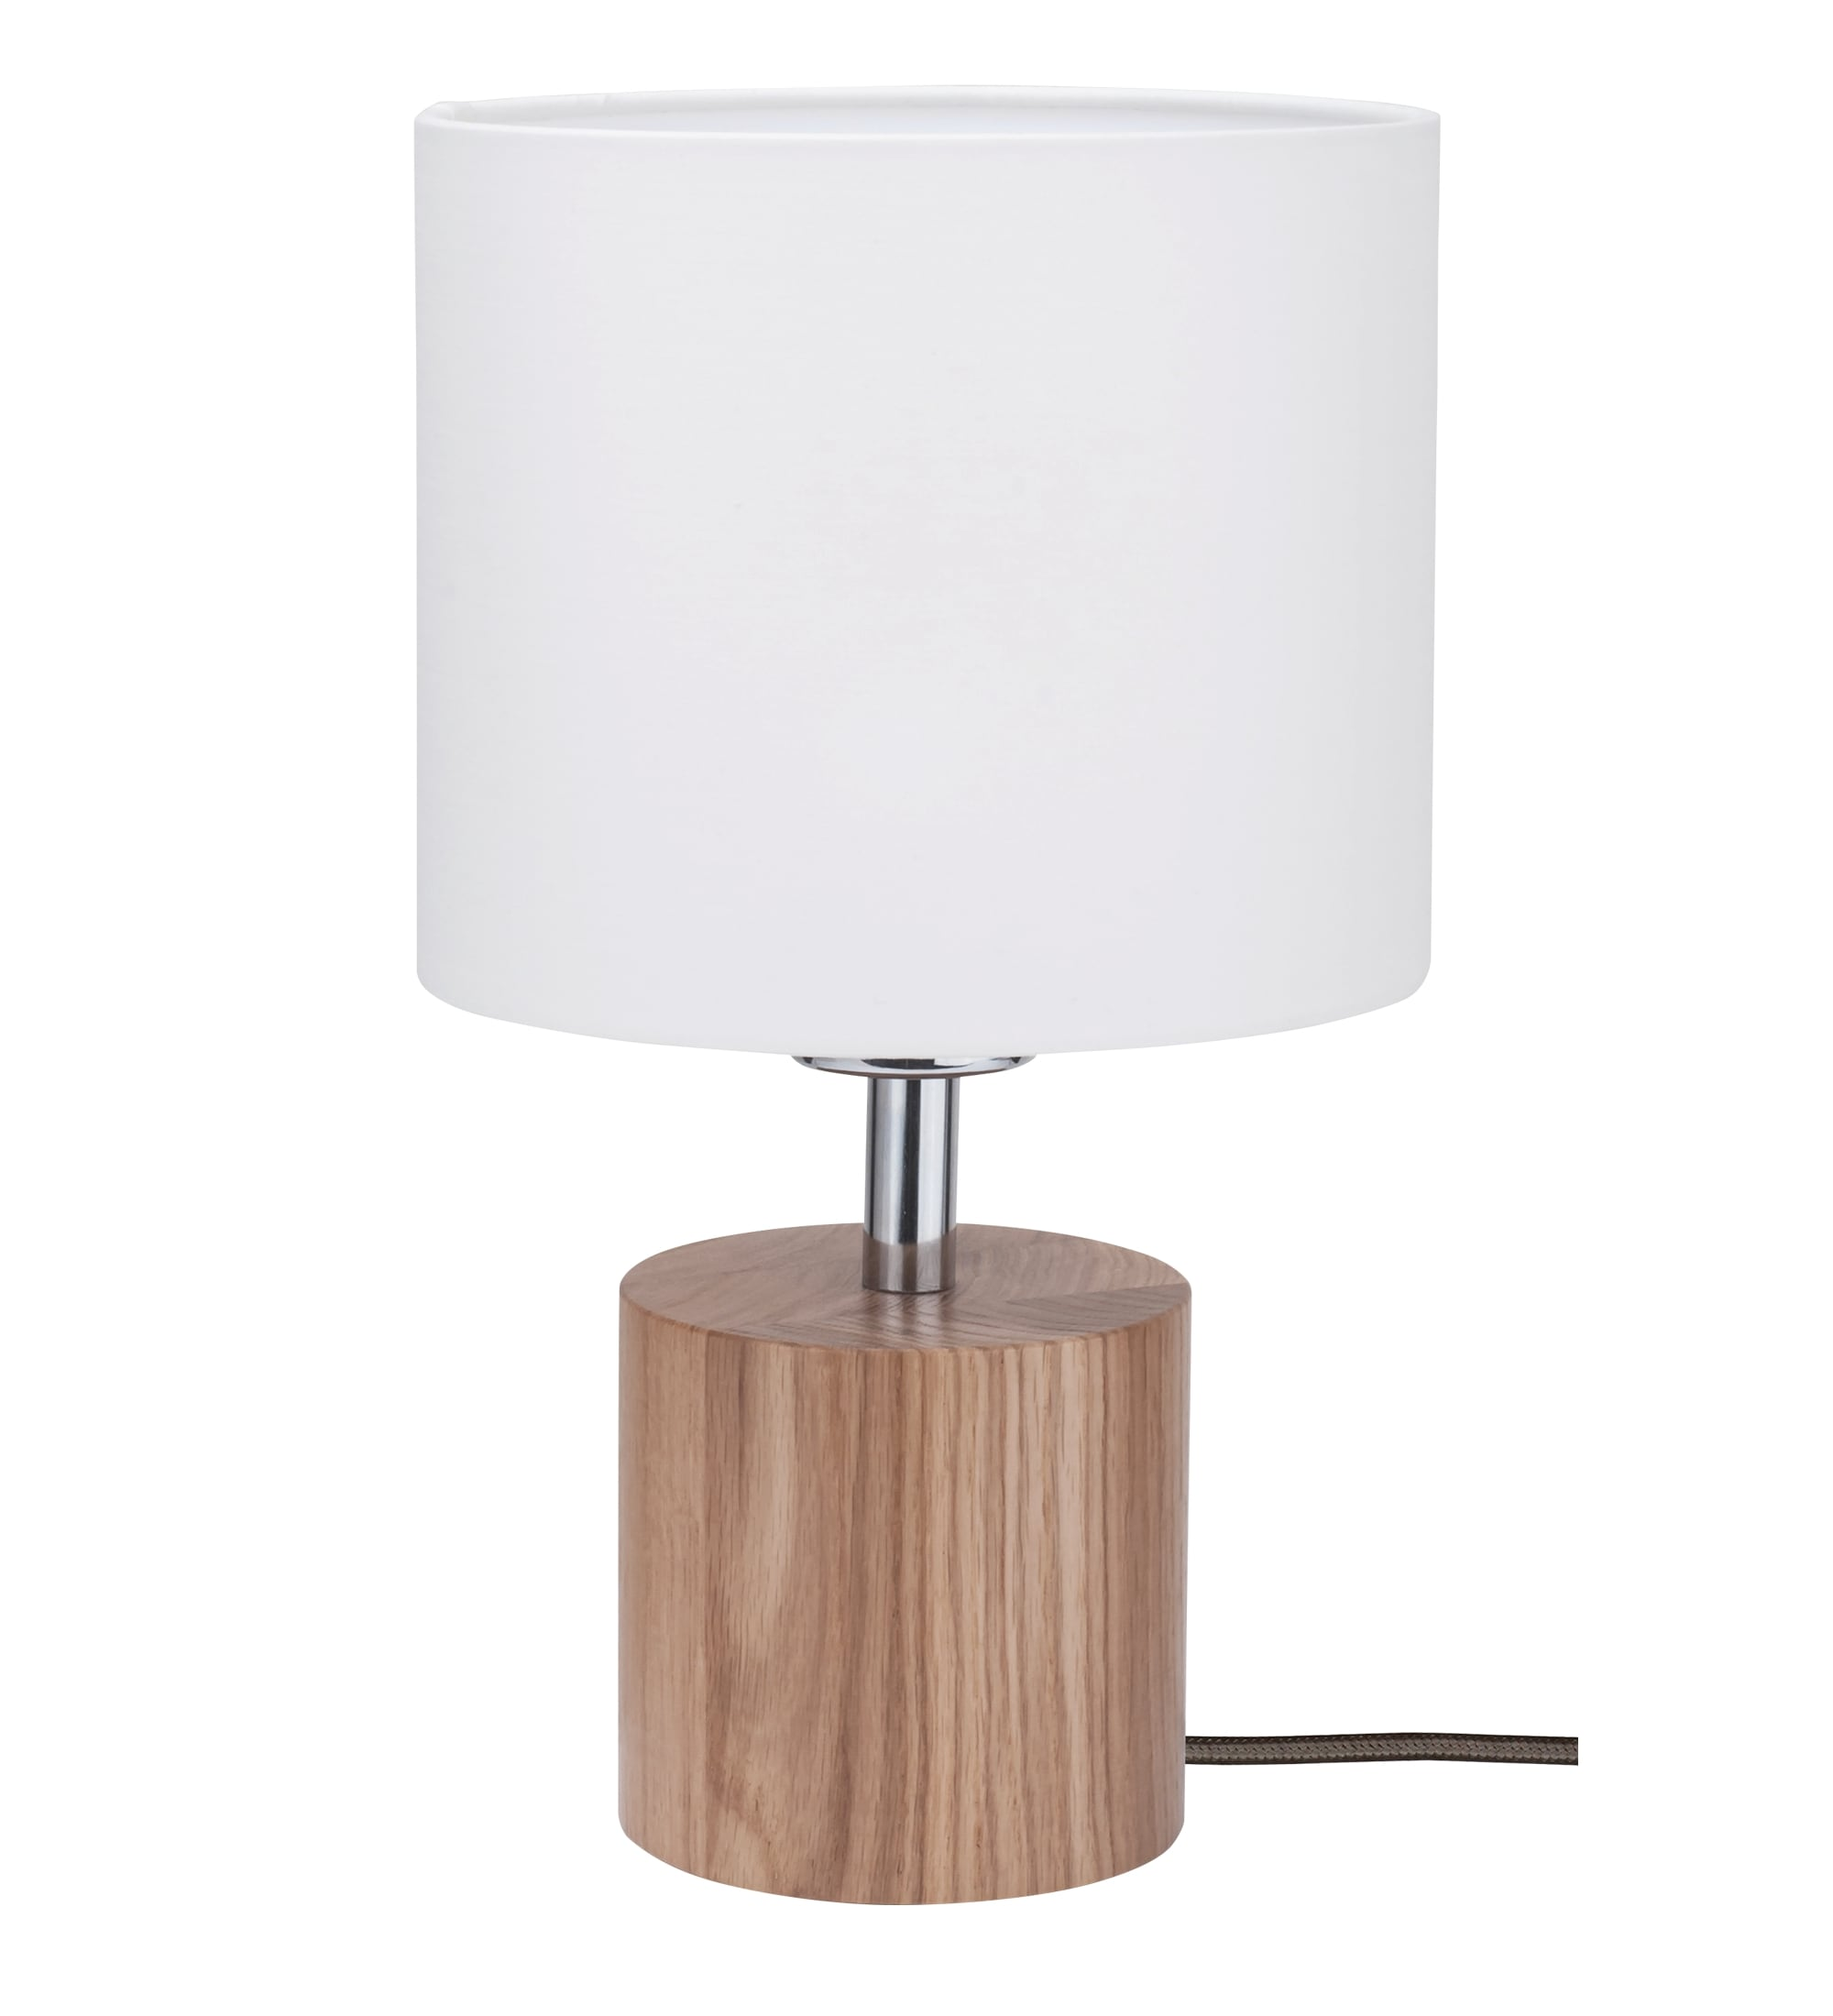 Table lamp Trongo oak different colors cable white E27 60W